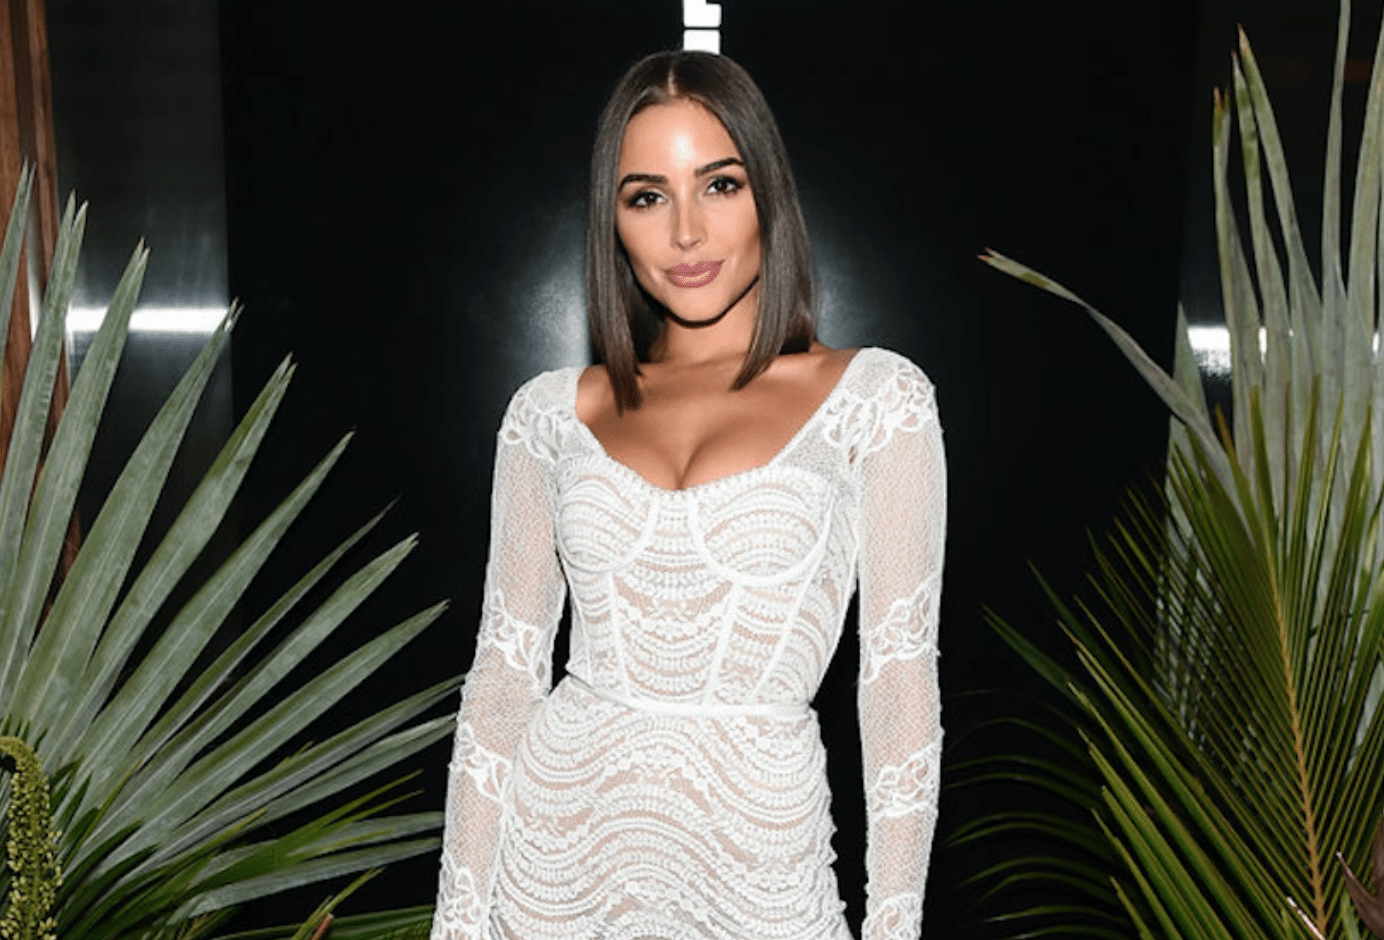 39 Hot Pictures Of Olivia Culpo Are Here To Get Your Blood